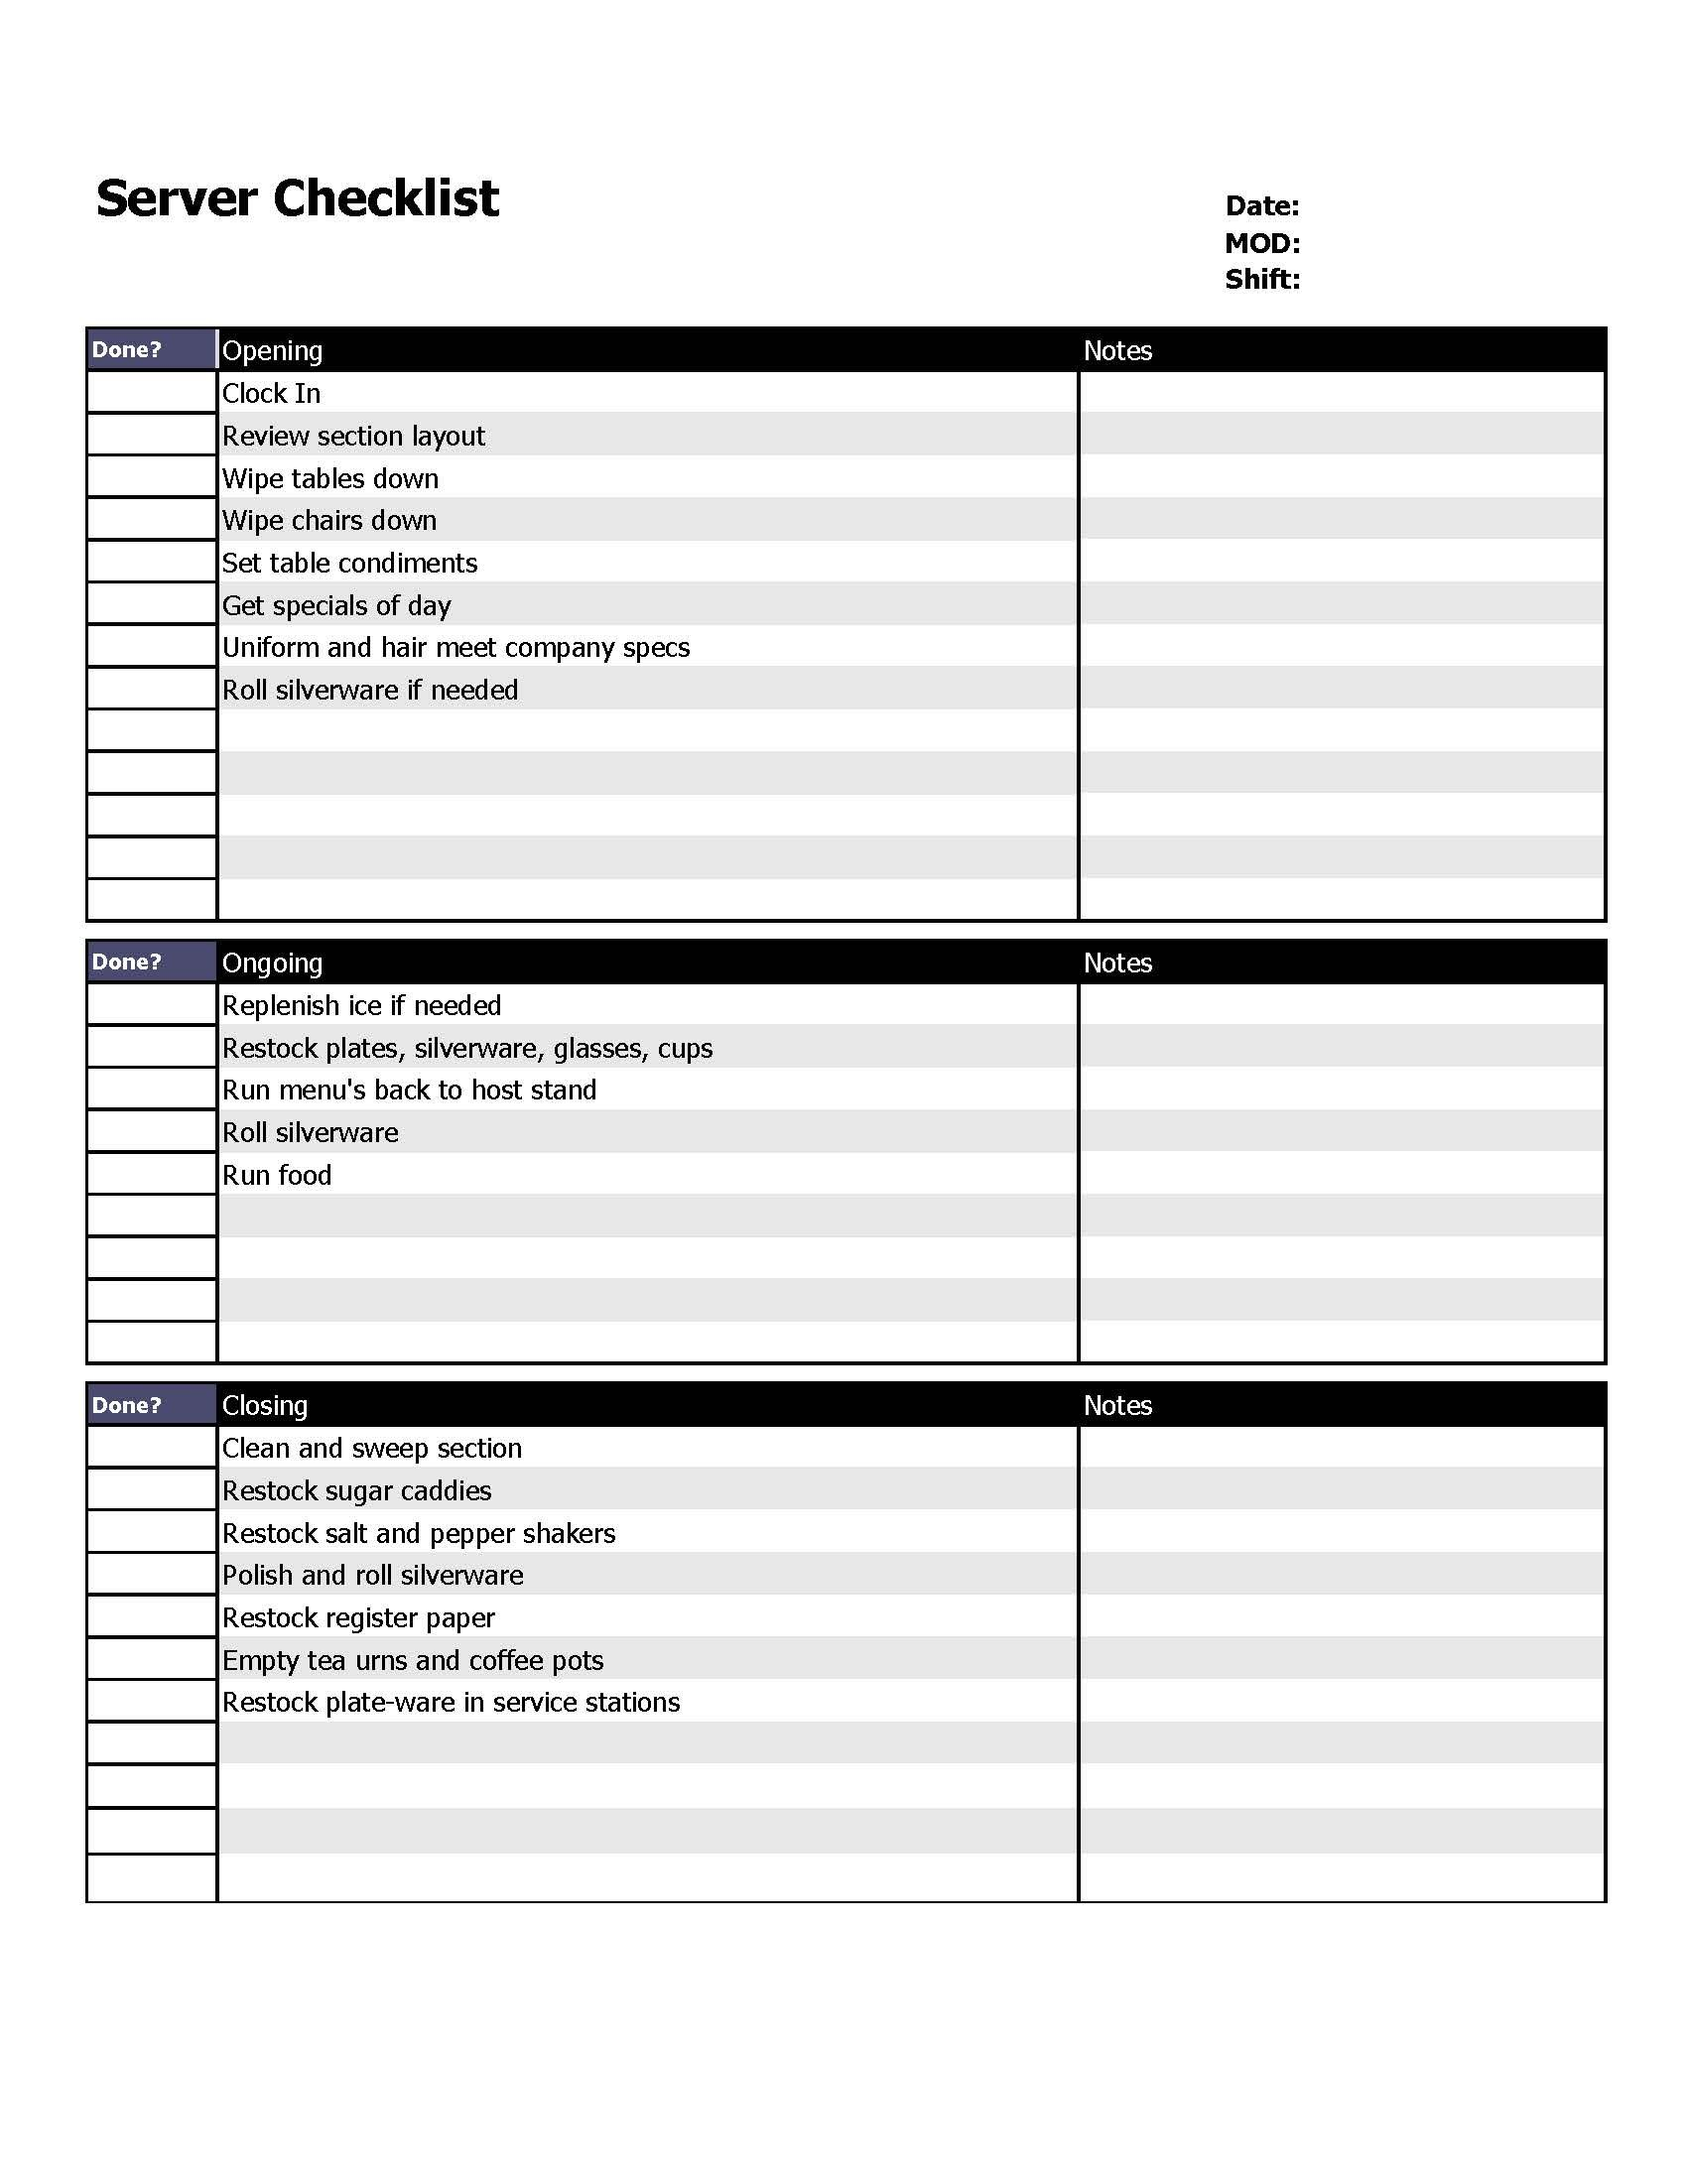 bartender schedule template - restaurant server checklist form organizing pinterest